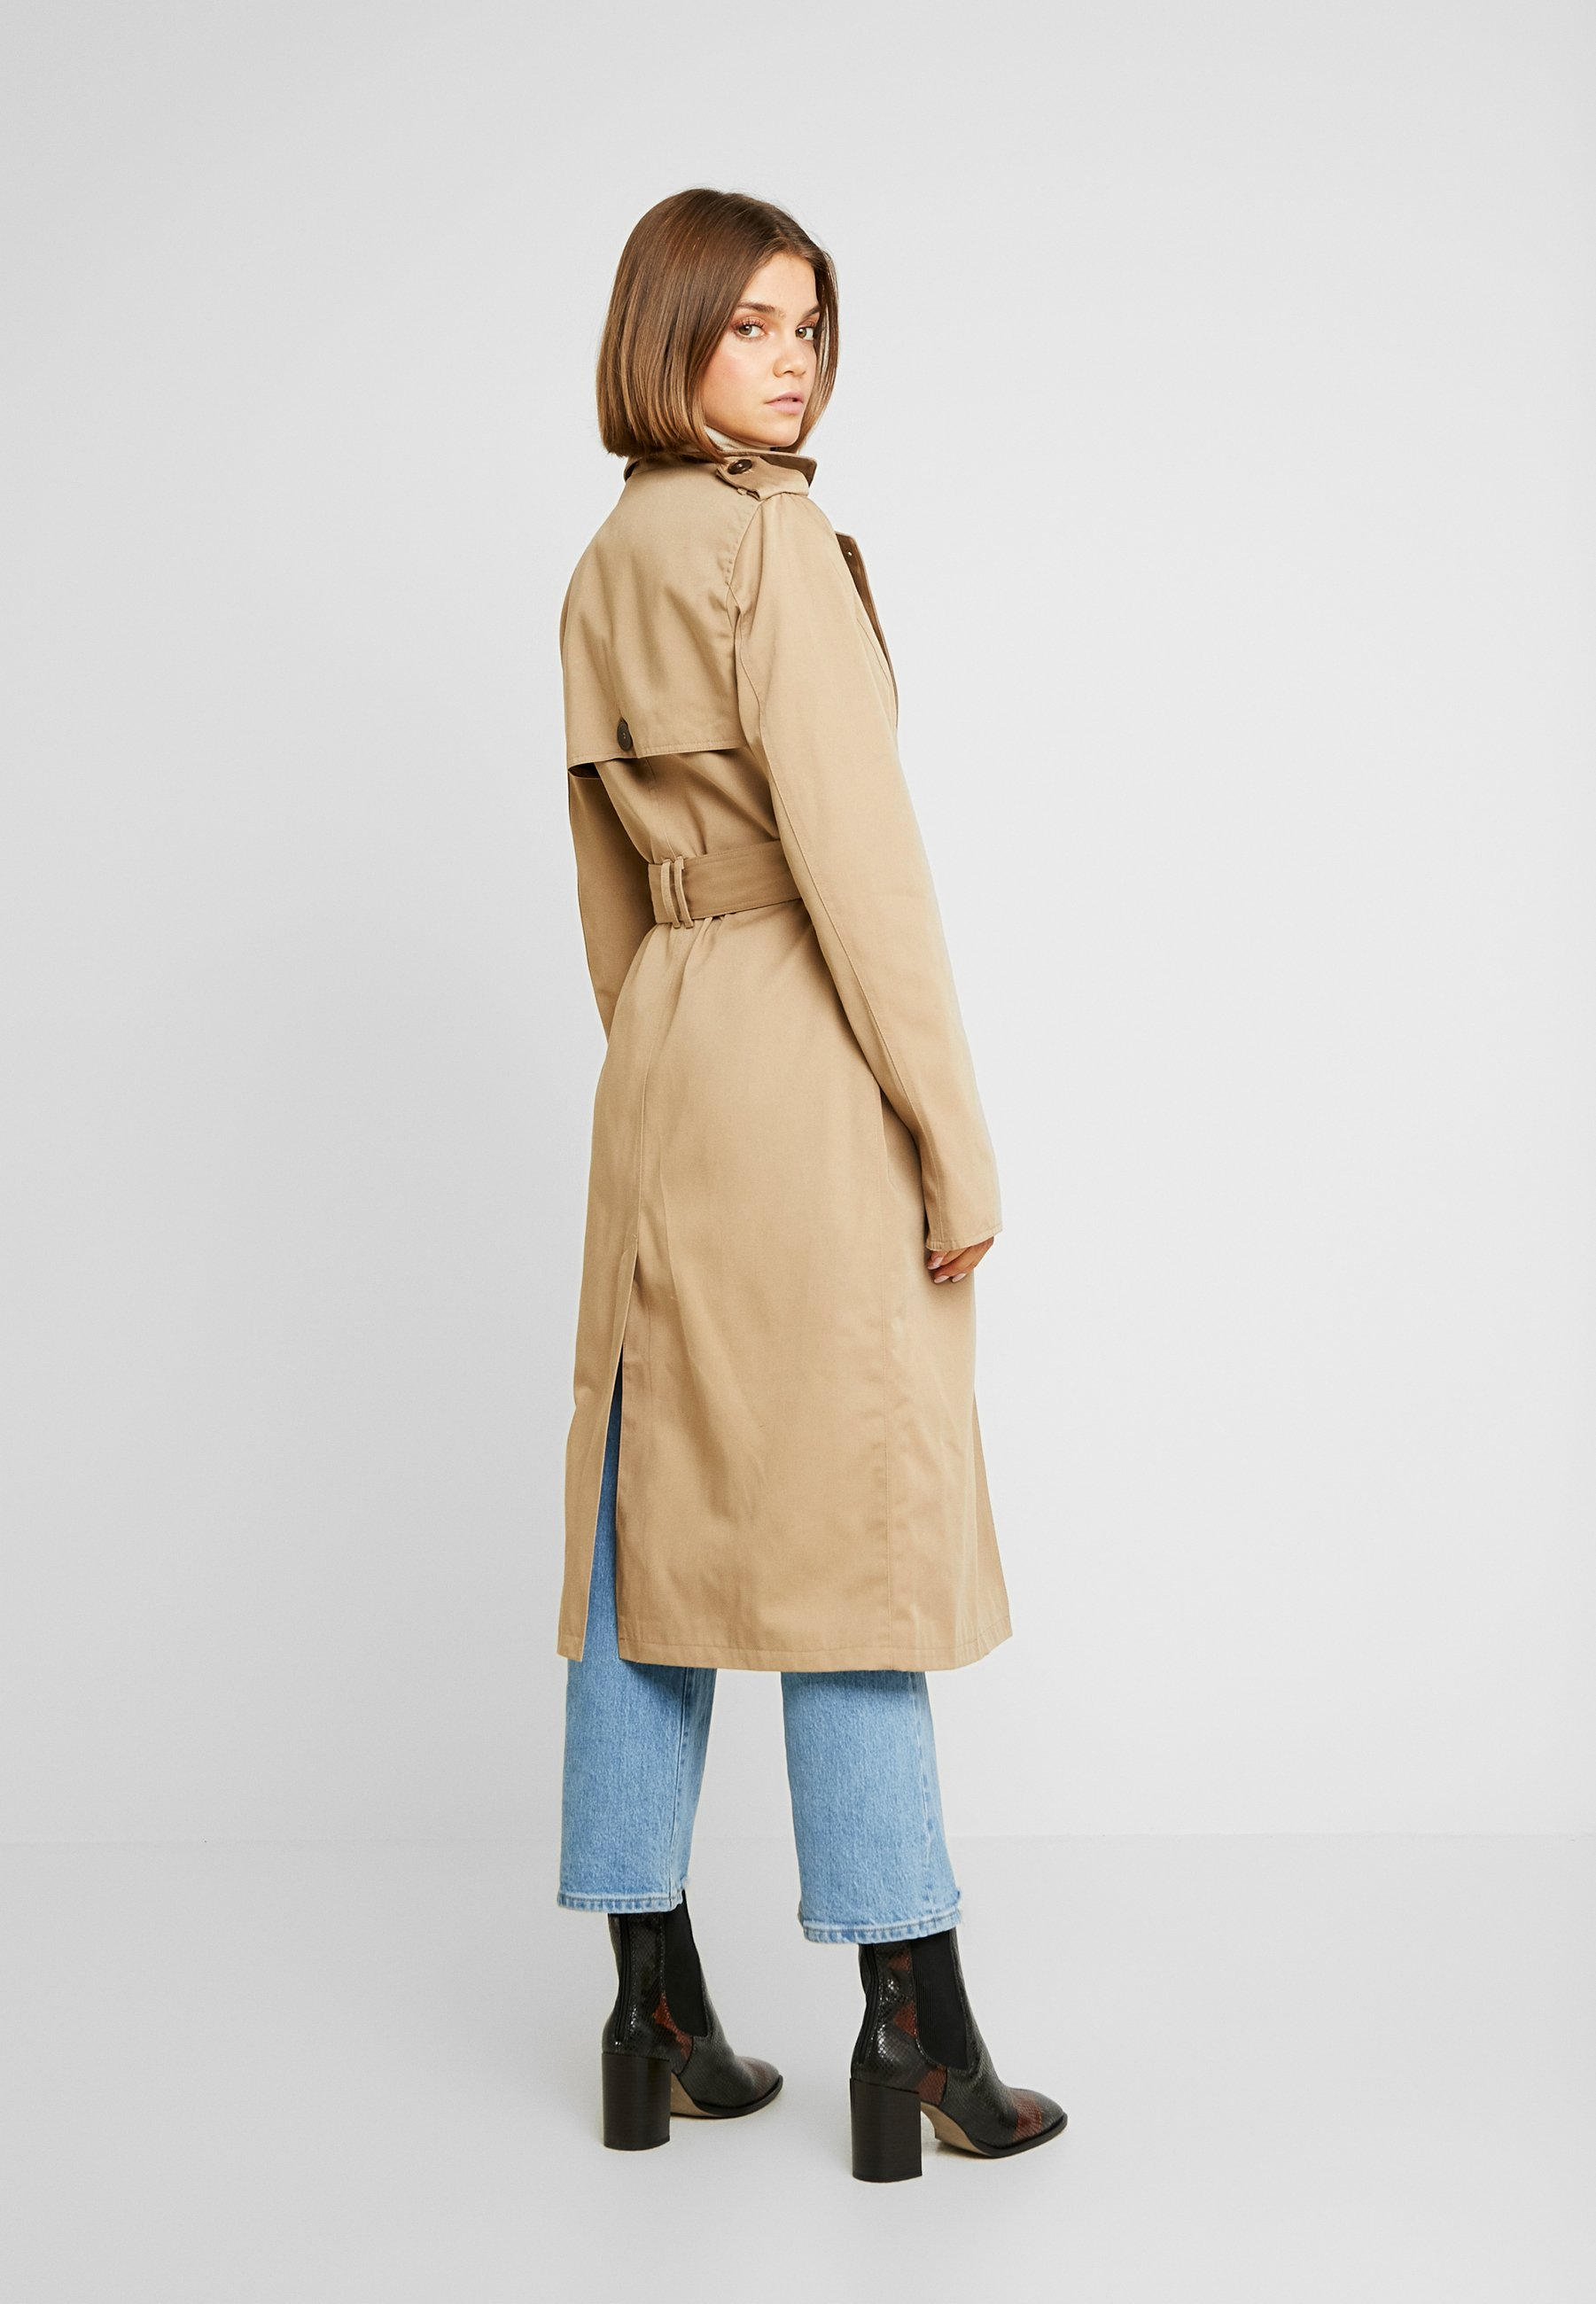 ClassicTrench Check Beige Contrast Warehouse ym0nv8NwO